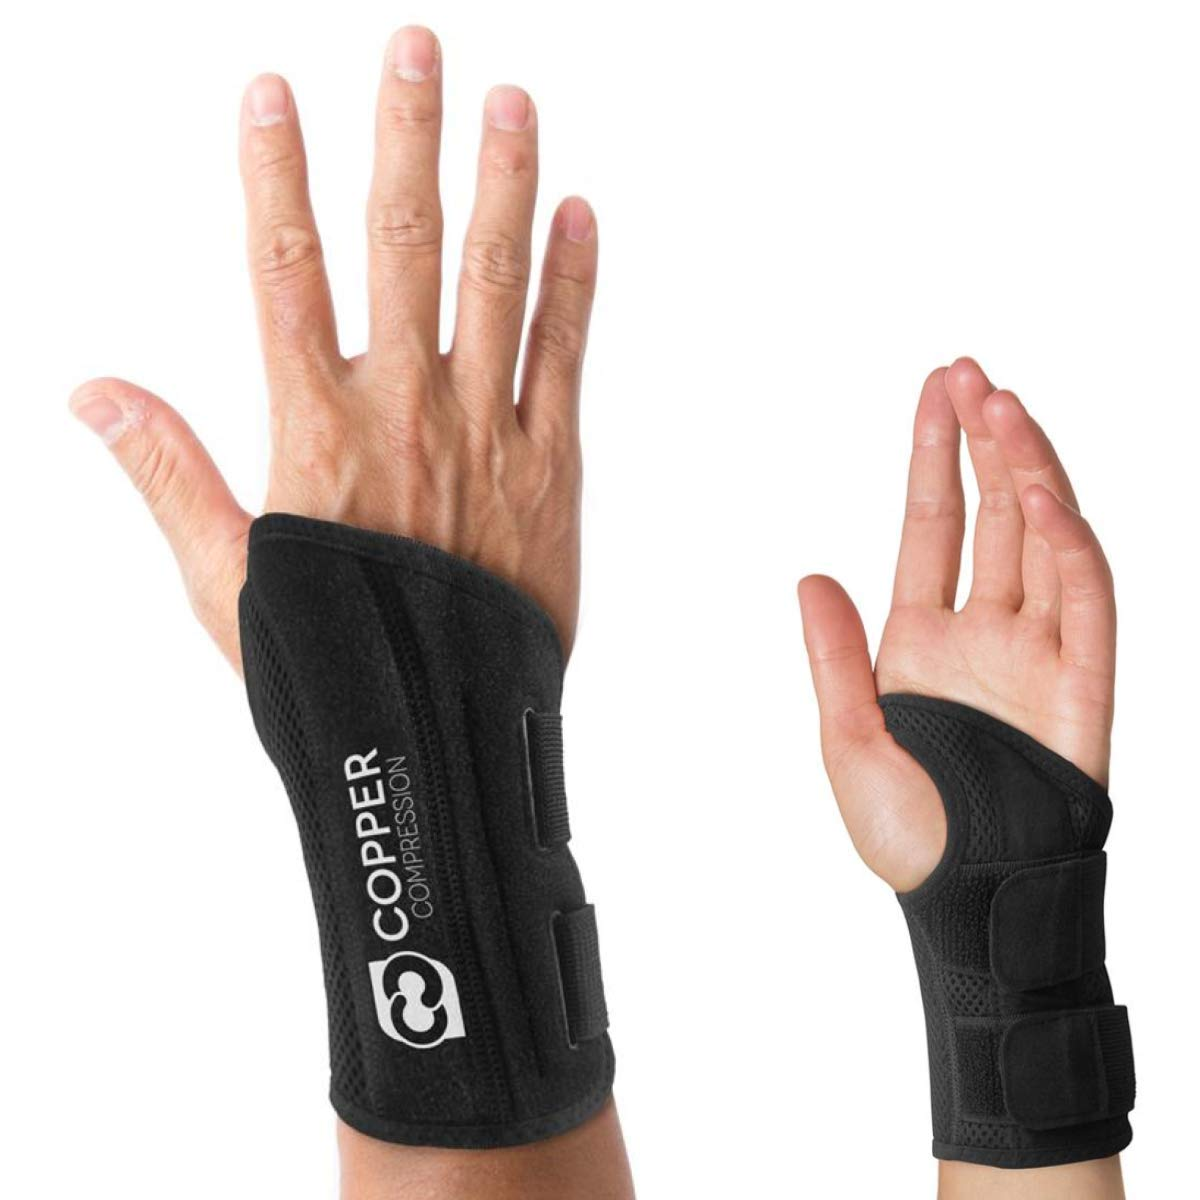 Copper Compression Wrist Brace - Guaranteed Highest Copper Content Support for Wrists, Carpal Tunnel, Arthritis, Tendonitis. Night and Day Wrist Splint for Men and Women Fit for Right and Left Hand